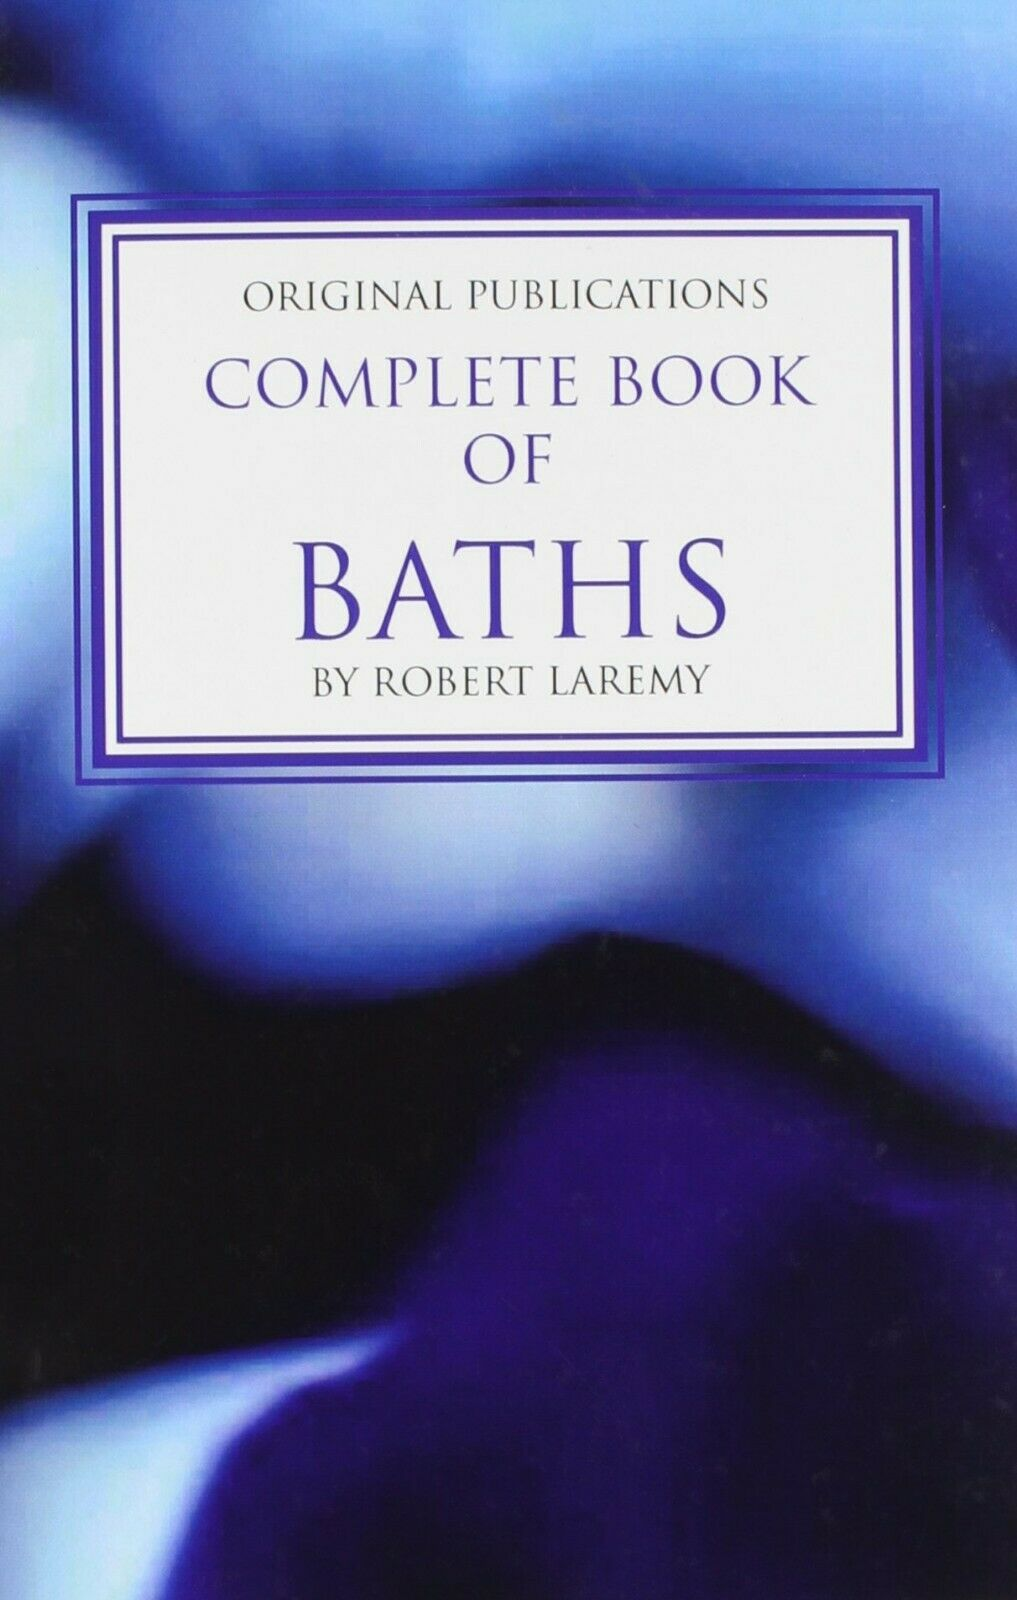 Complete Book of Baths (Robert Laremy)